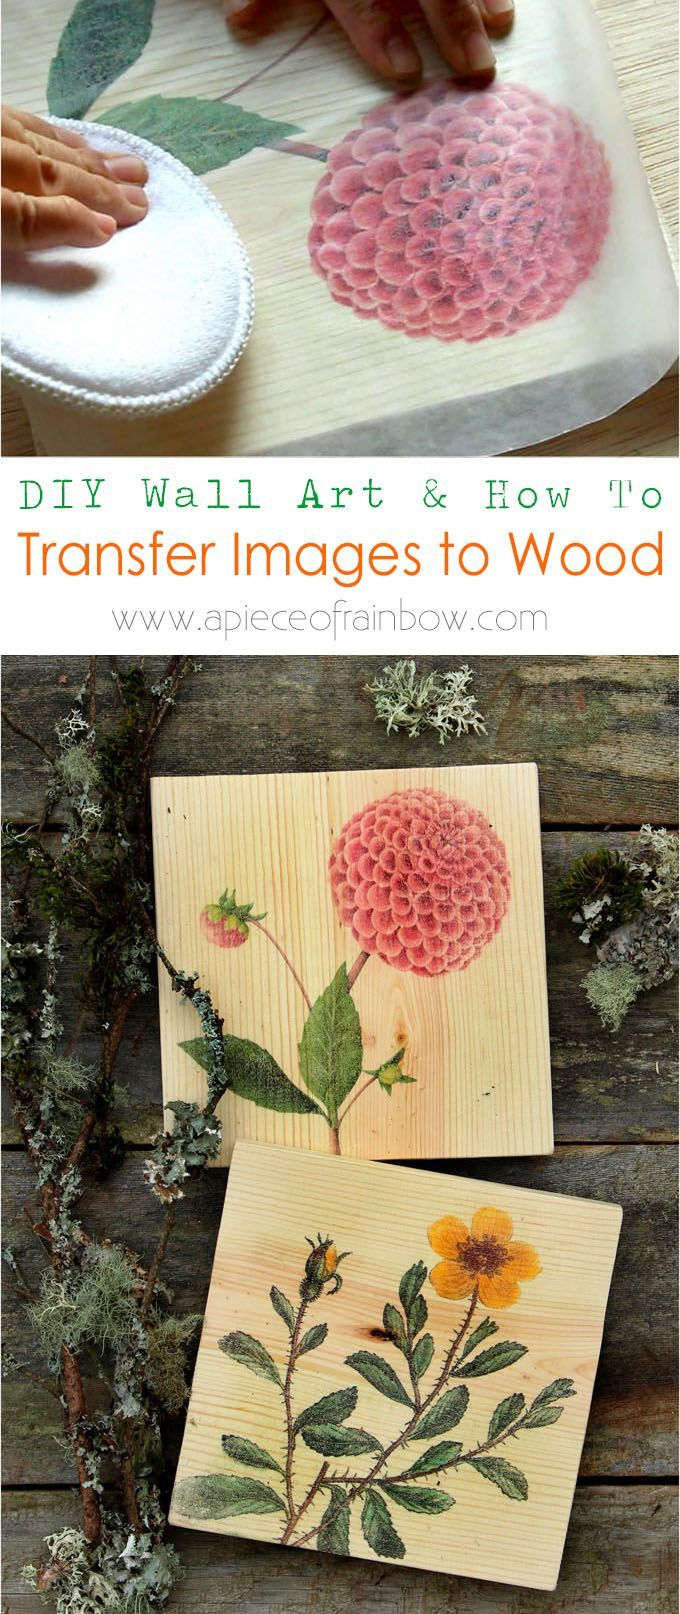 Diy wall art how to transfer image to wood wood wall for How do i transfer a picture onto wood